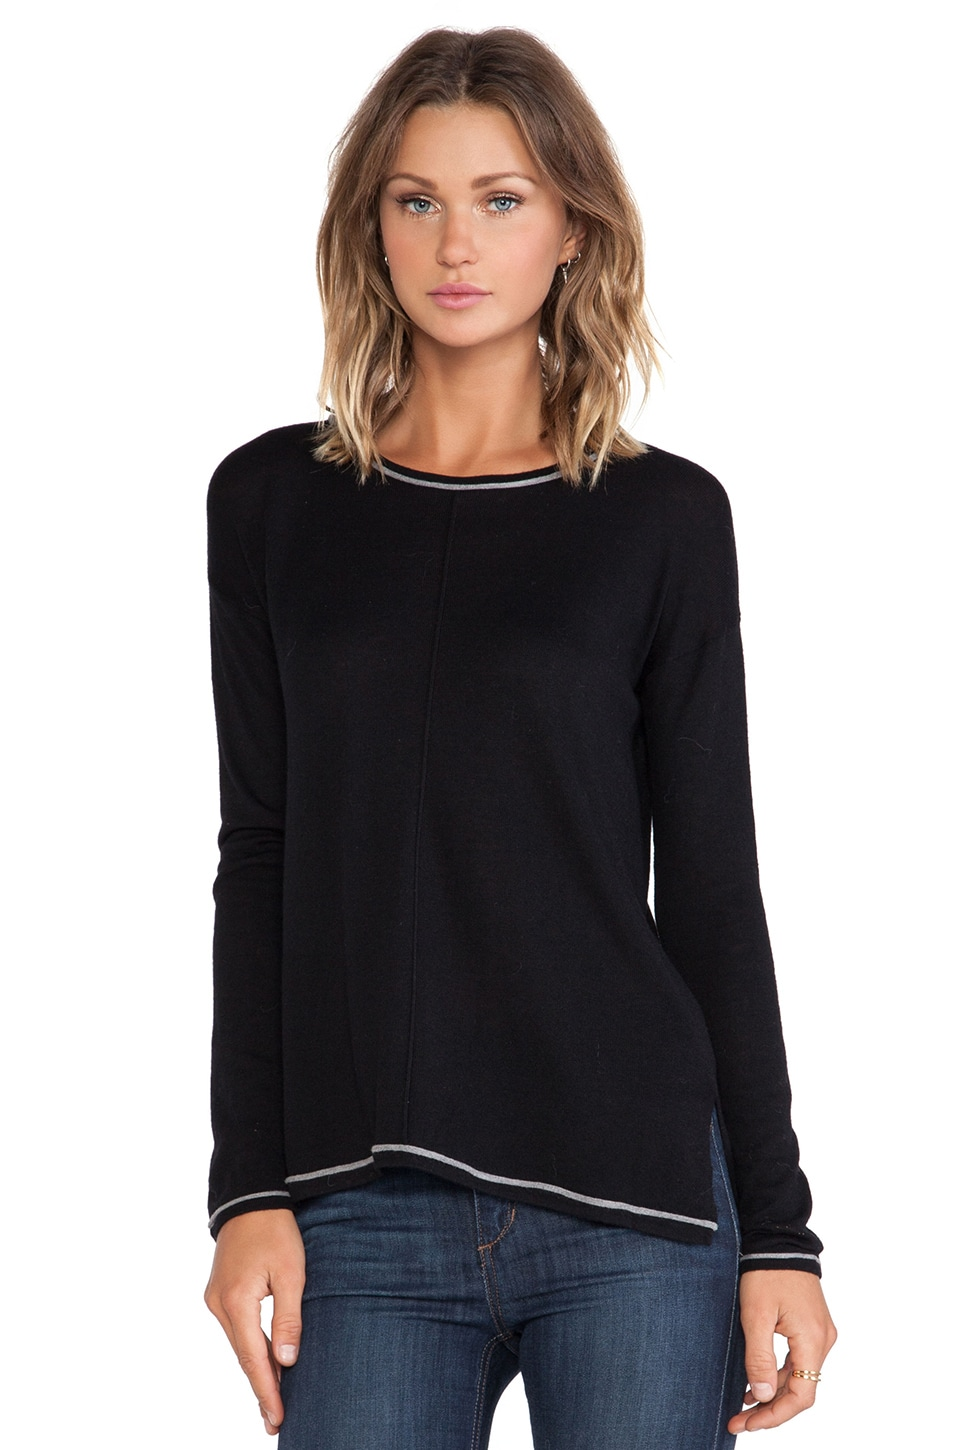 C&C California Side Slit Sweater in Black